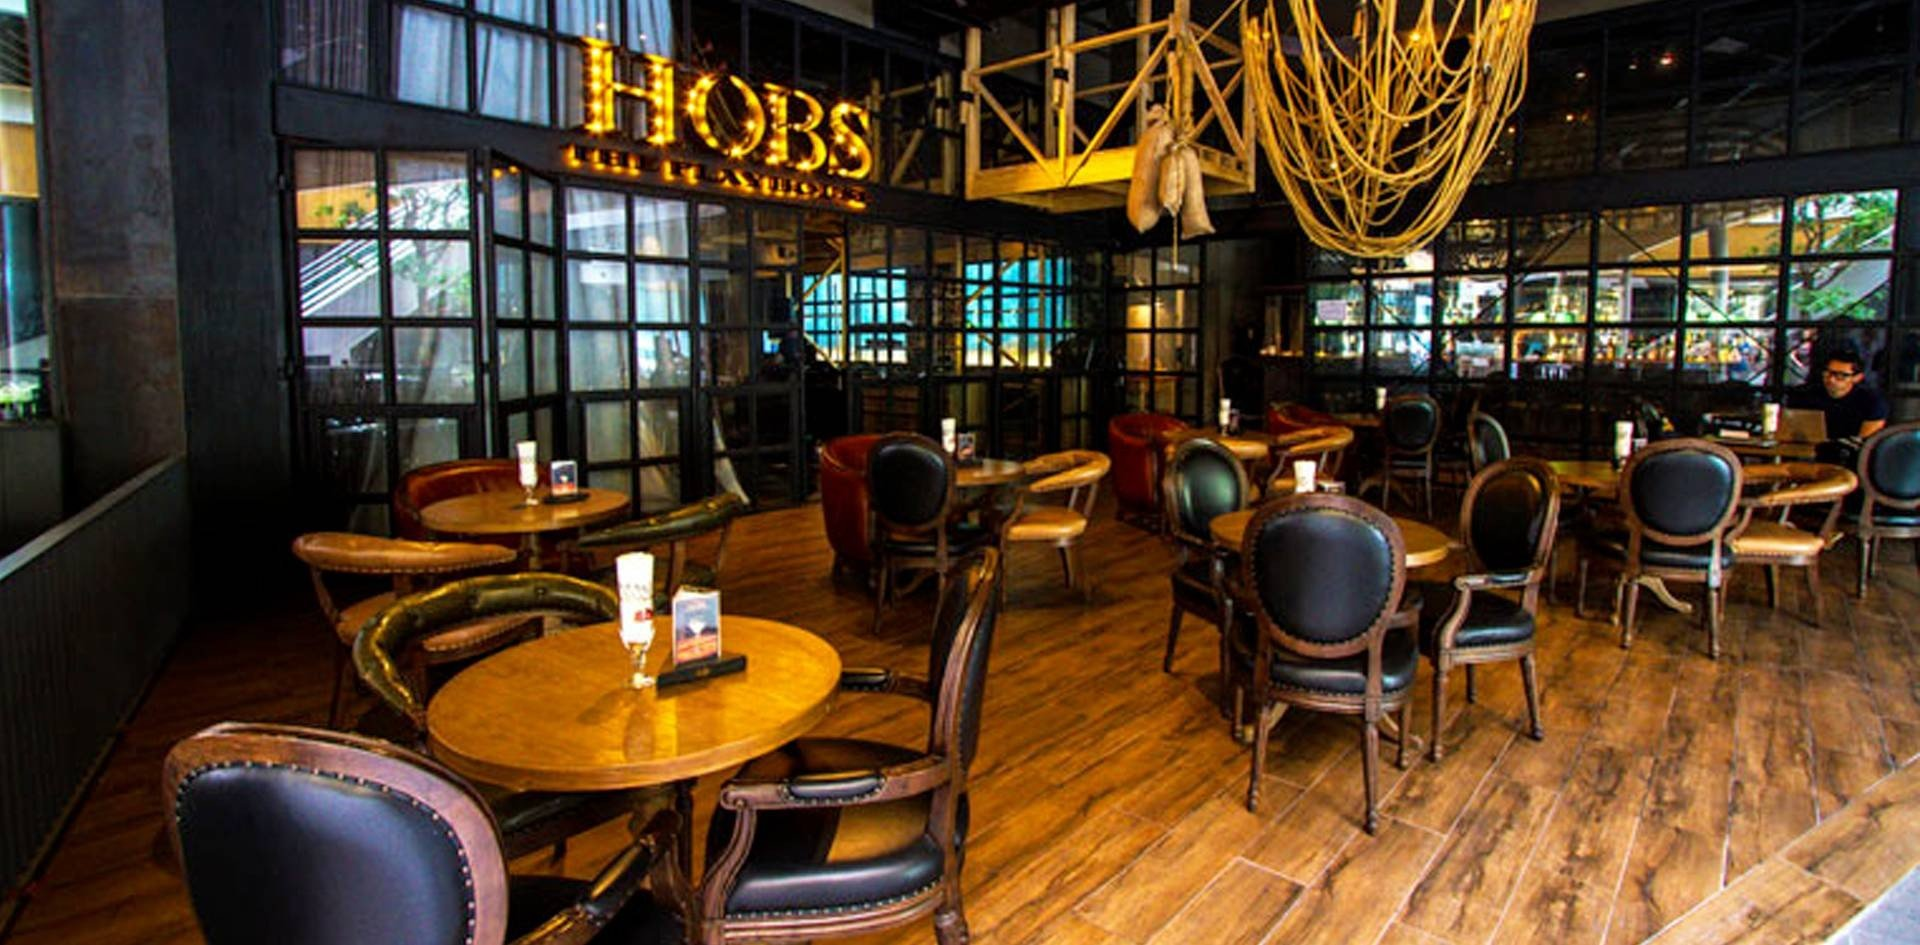 HOBS The Playhouse Groove@CentralWorld